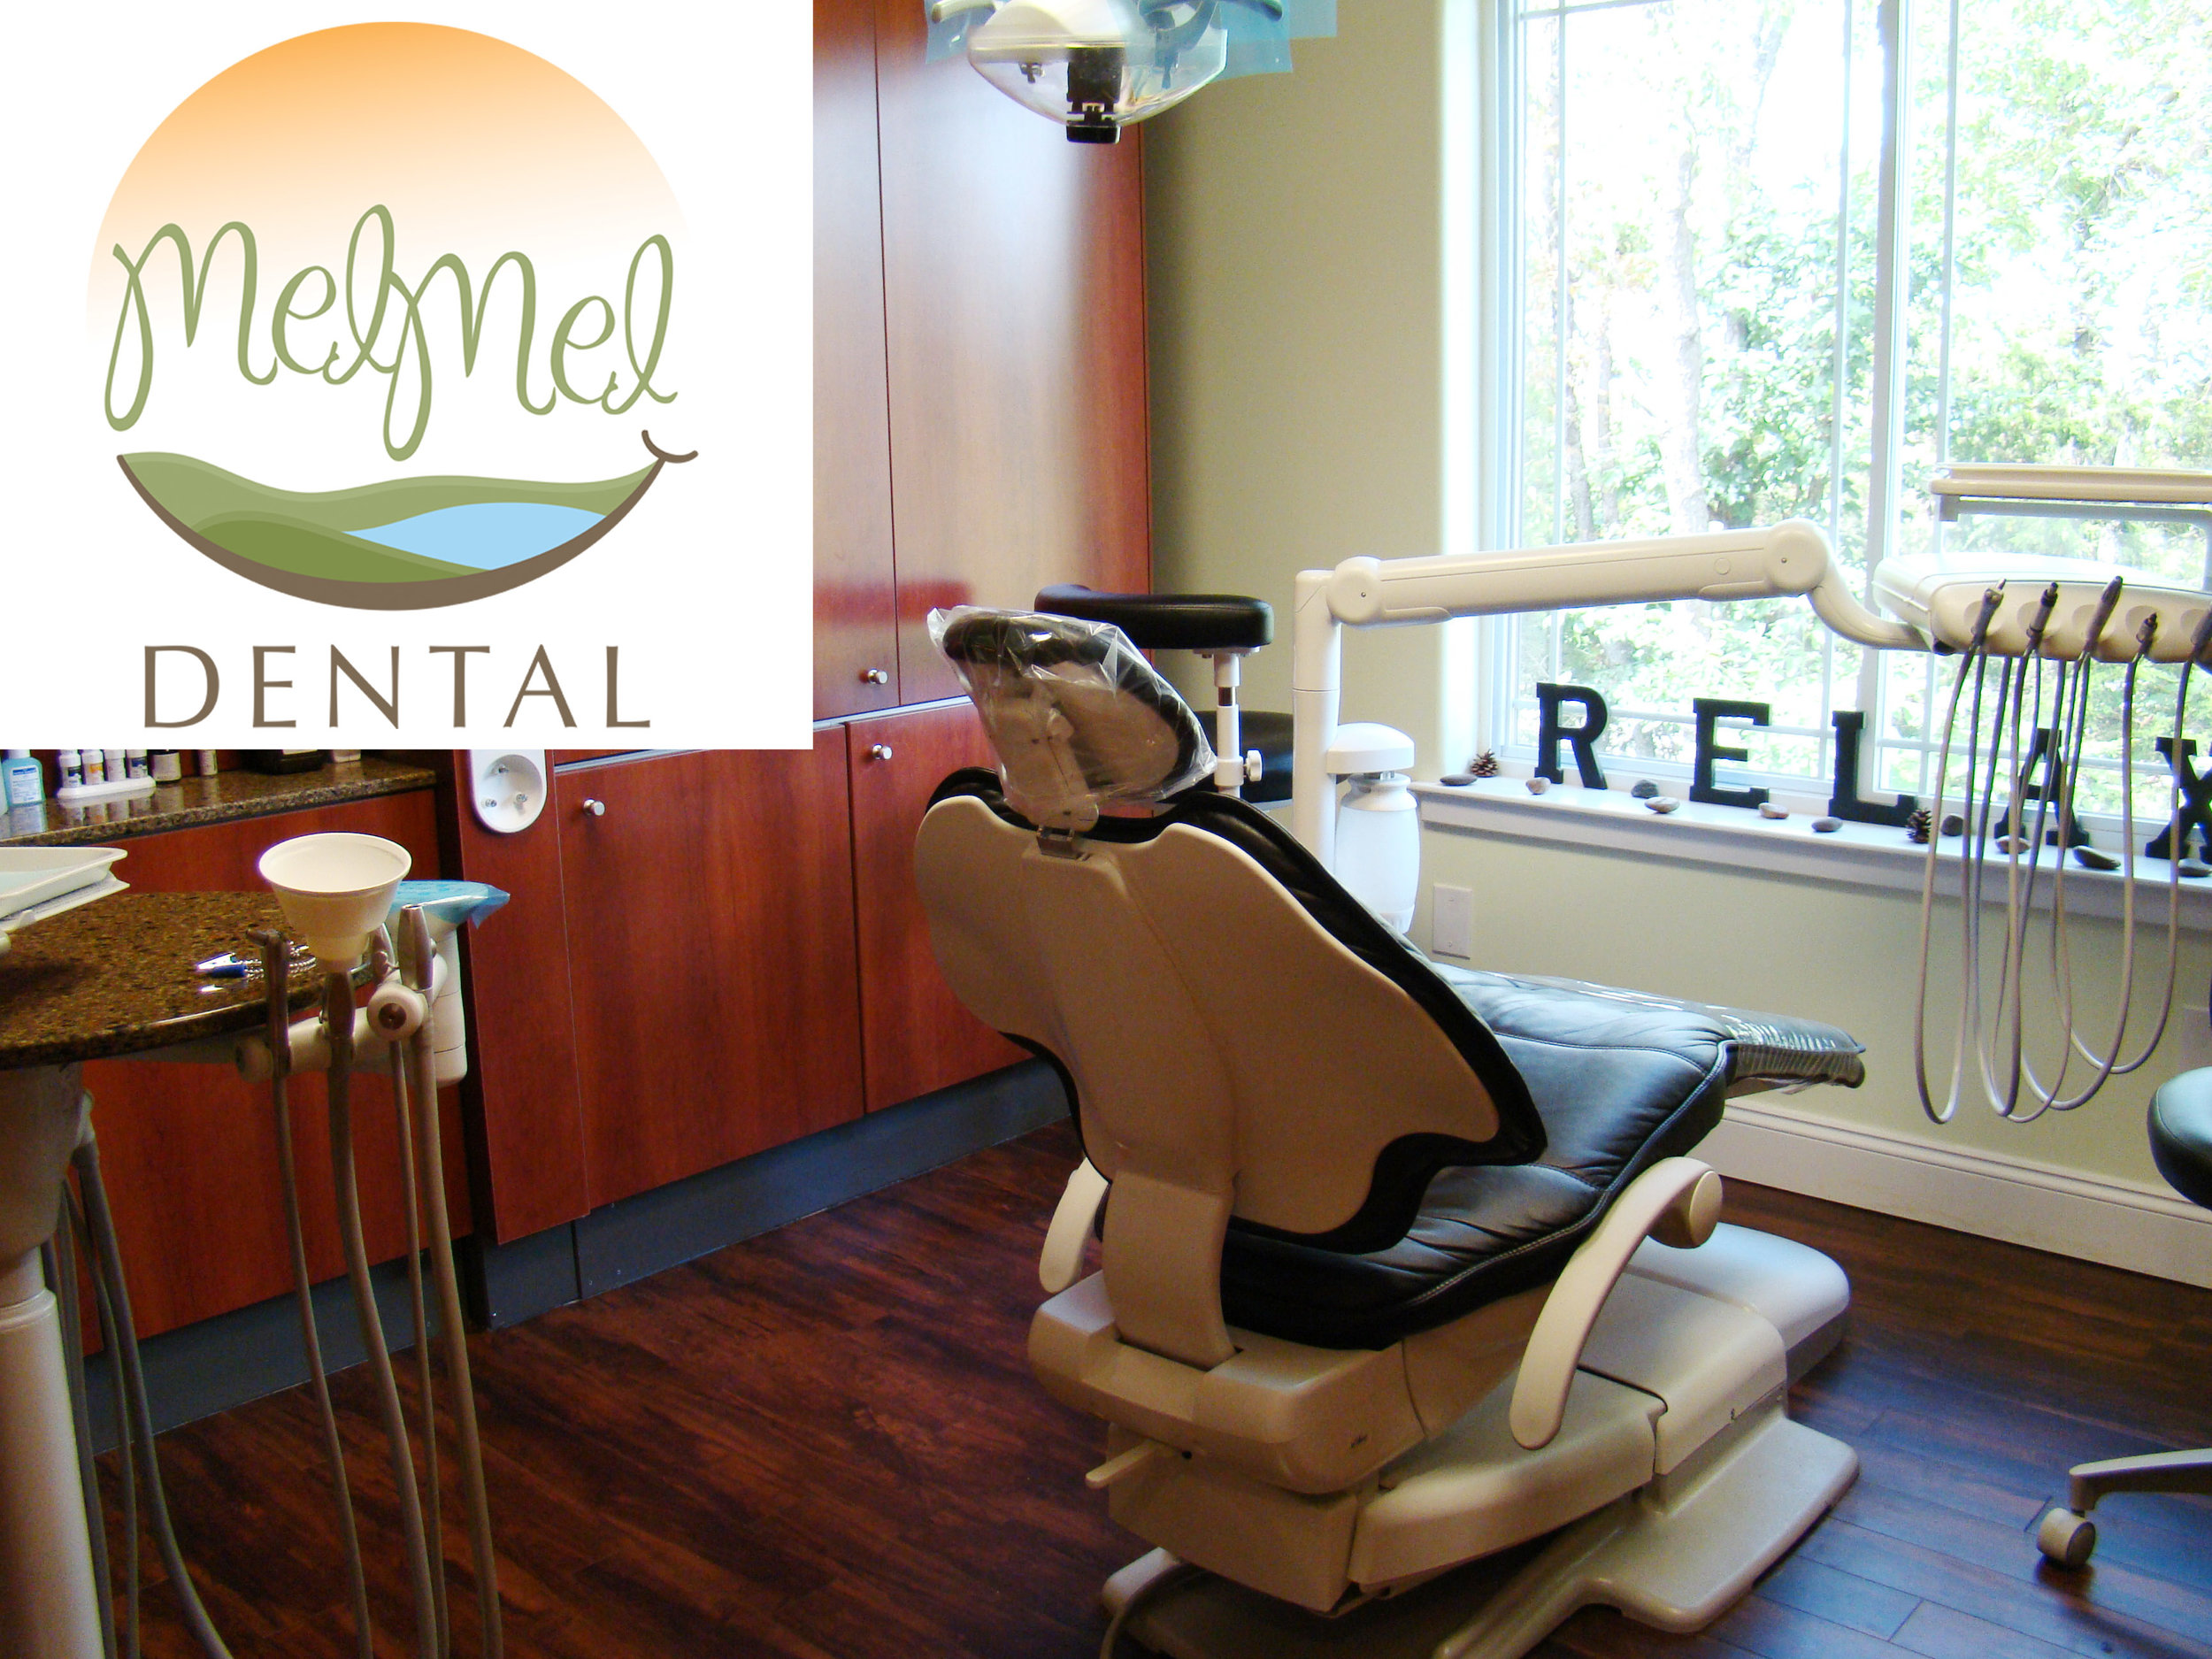 Family & Cosmetic DentistryWhere beautiful smiles come to life! - 1289 Route 9, Suite 8, Wappingers Falls, NYMarius v. Suditu, DDS845-632-6613more….